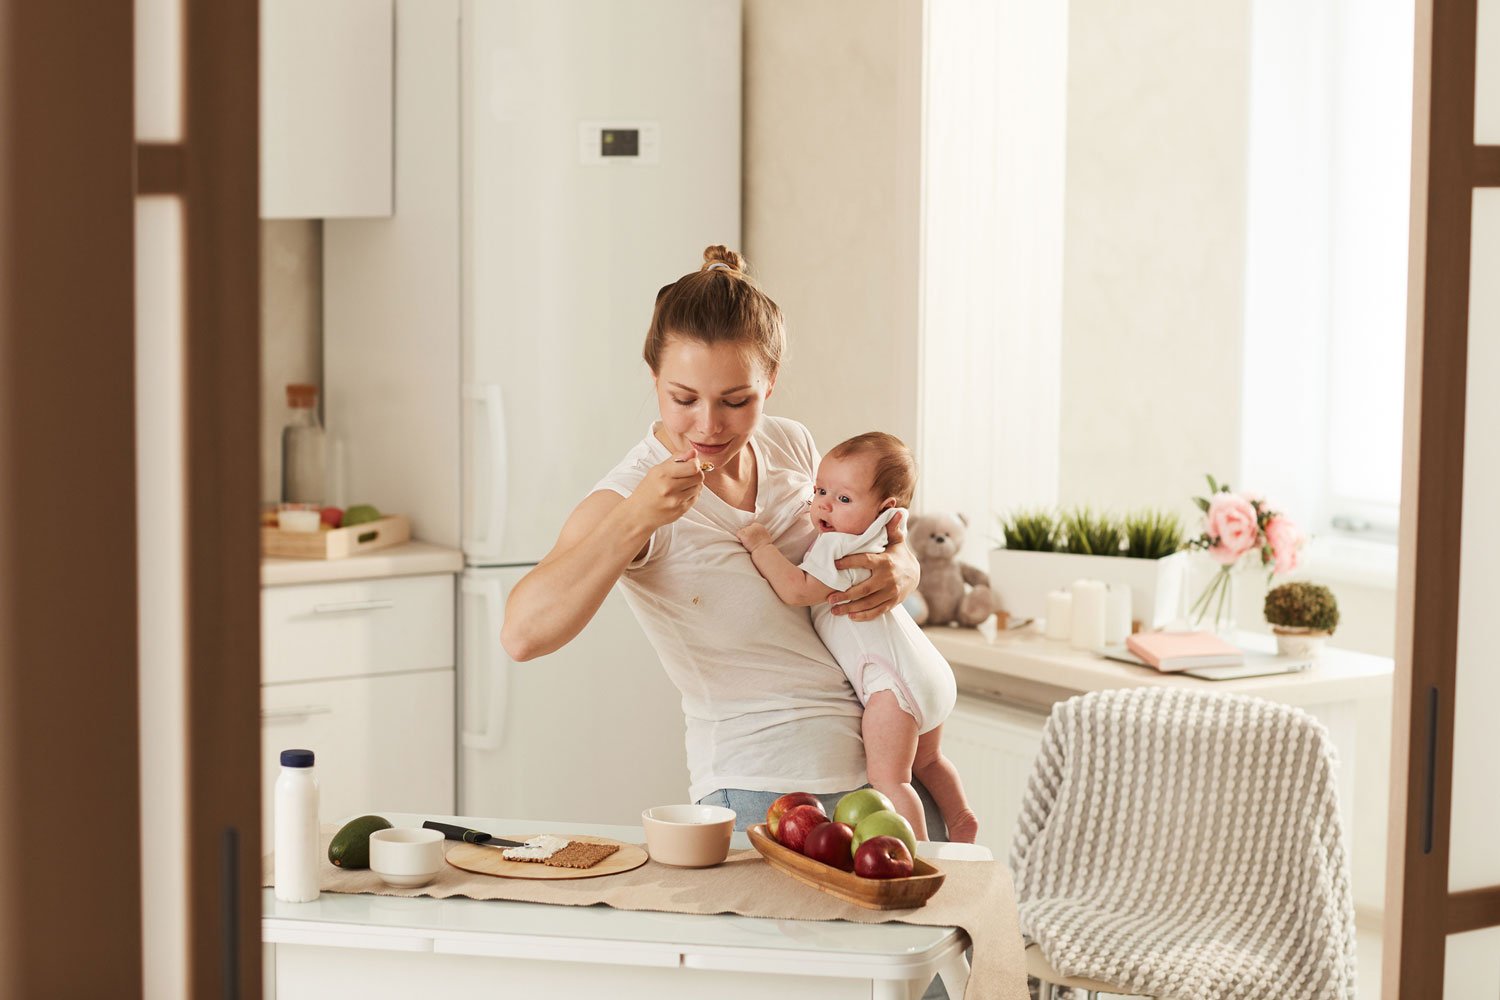 5 Nutritious and Delicious Postpartum Snacks